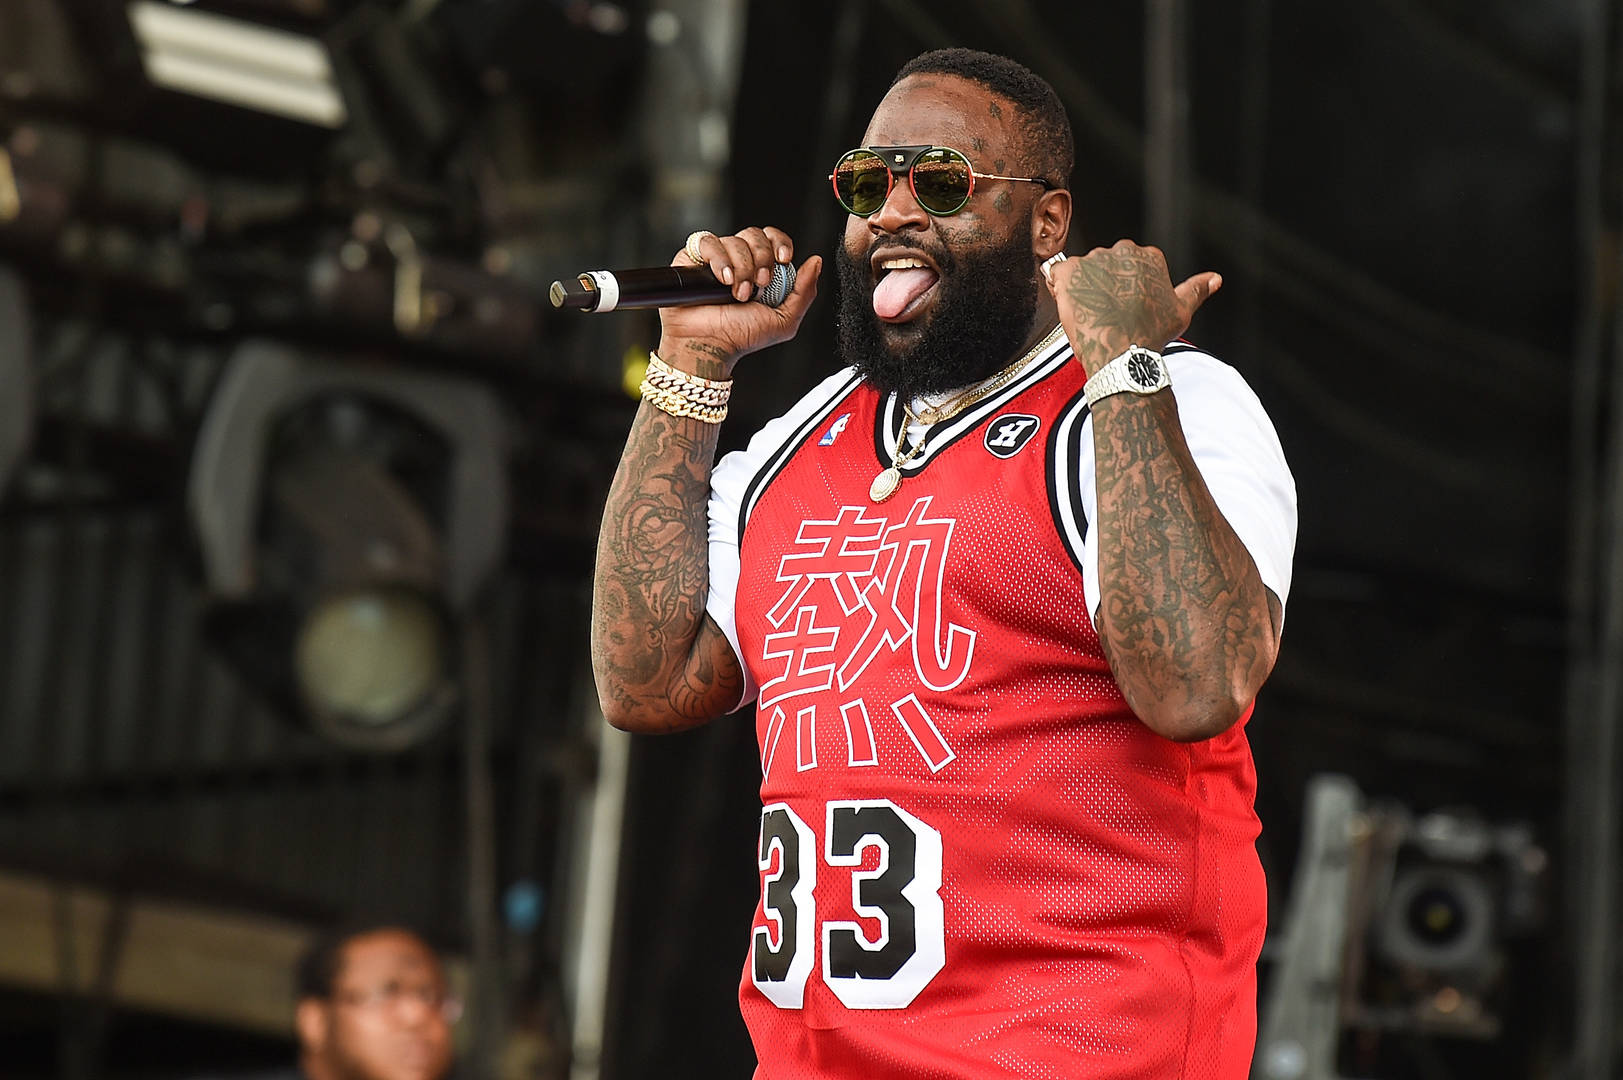 """Where Will Rick Ross' """"Port Of Miami 2"""" Take Him?"""